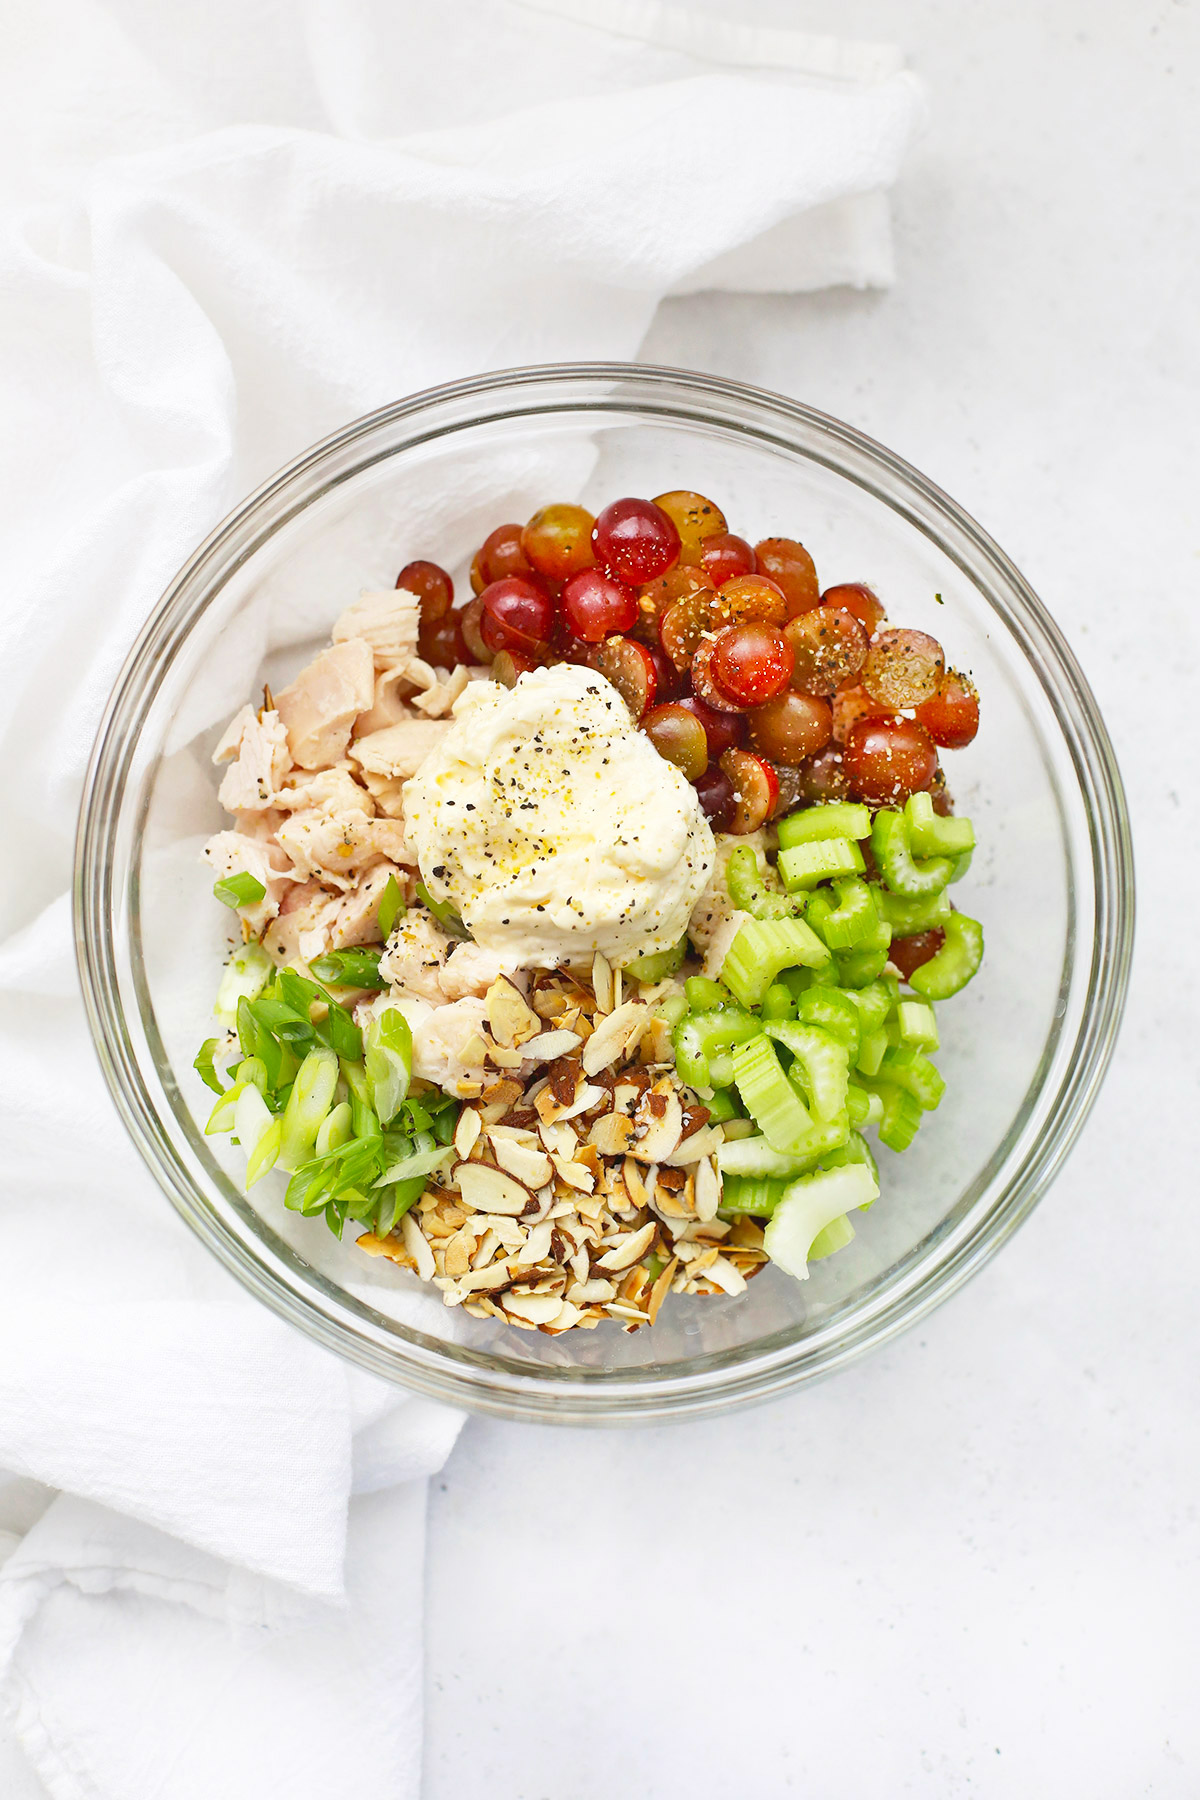 Chicken Salad Ingredients in a glass bowl with a white kitchen towel in the background